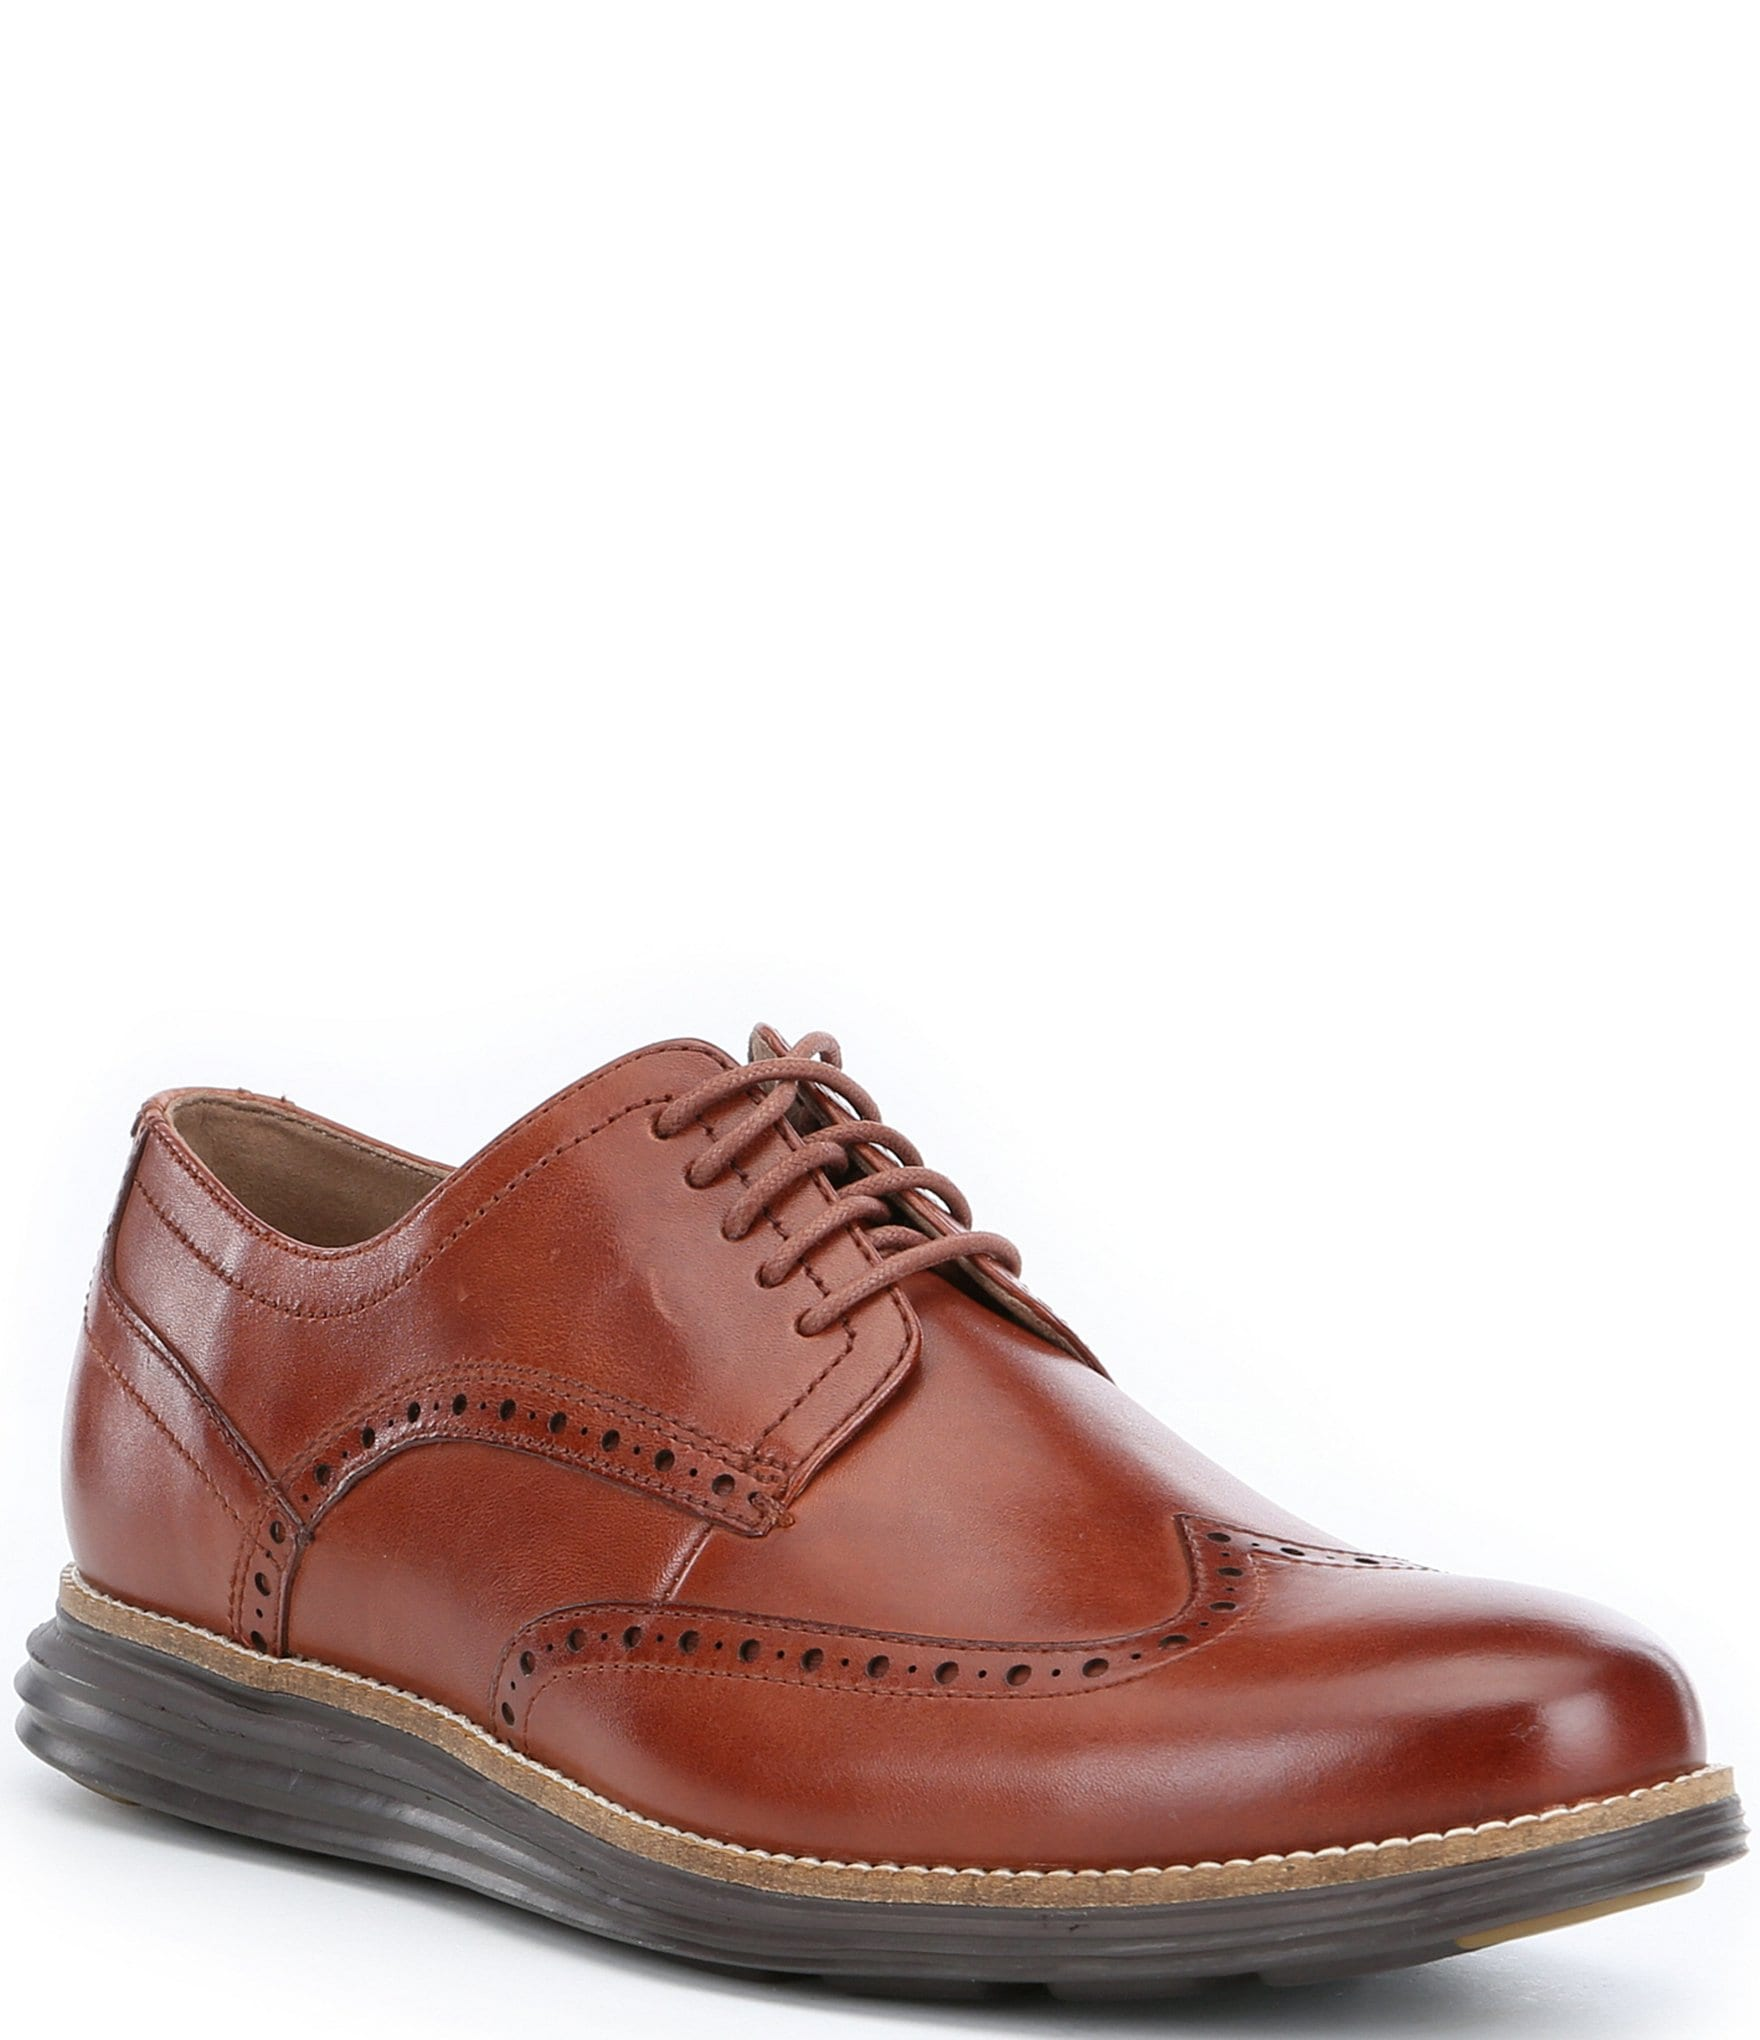 Cole Haan Shoes Clearance Sale